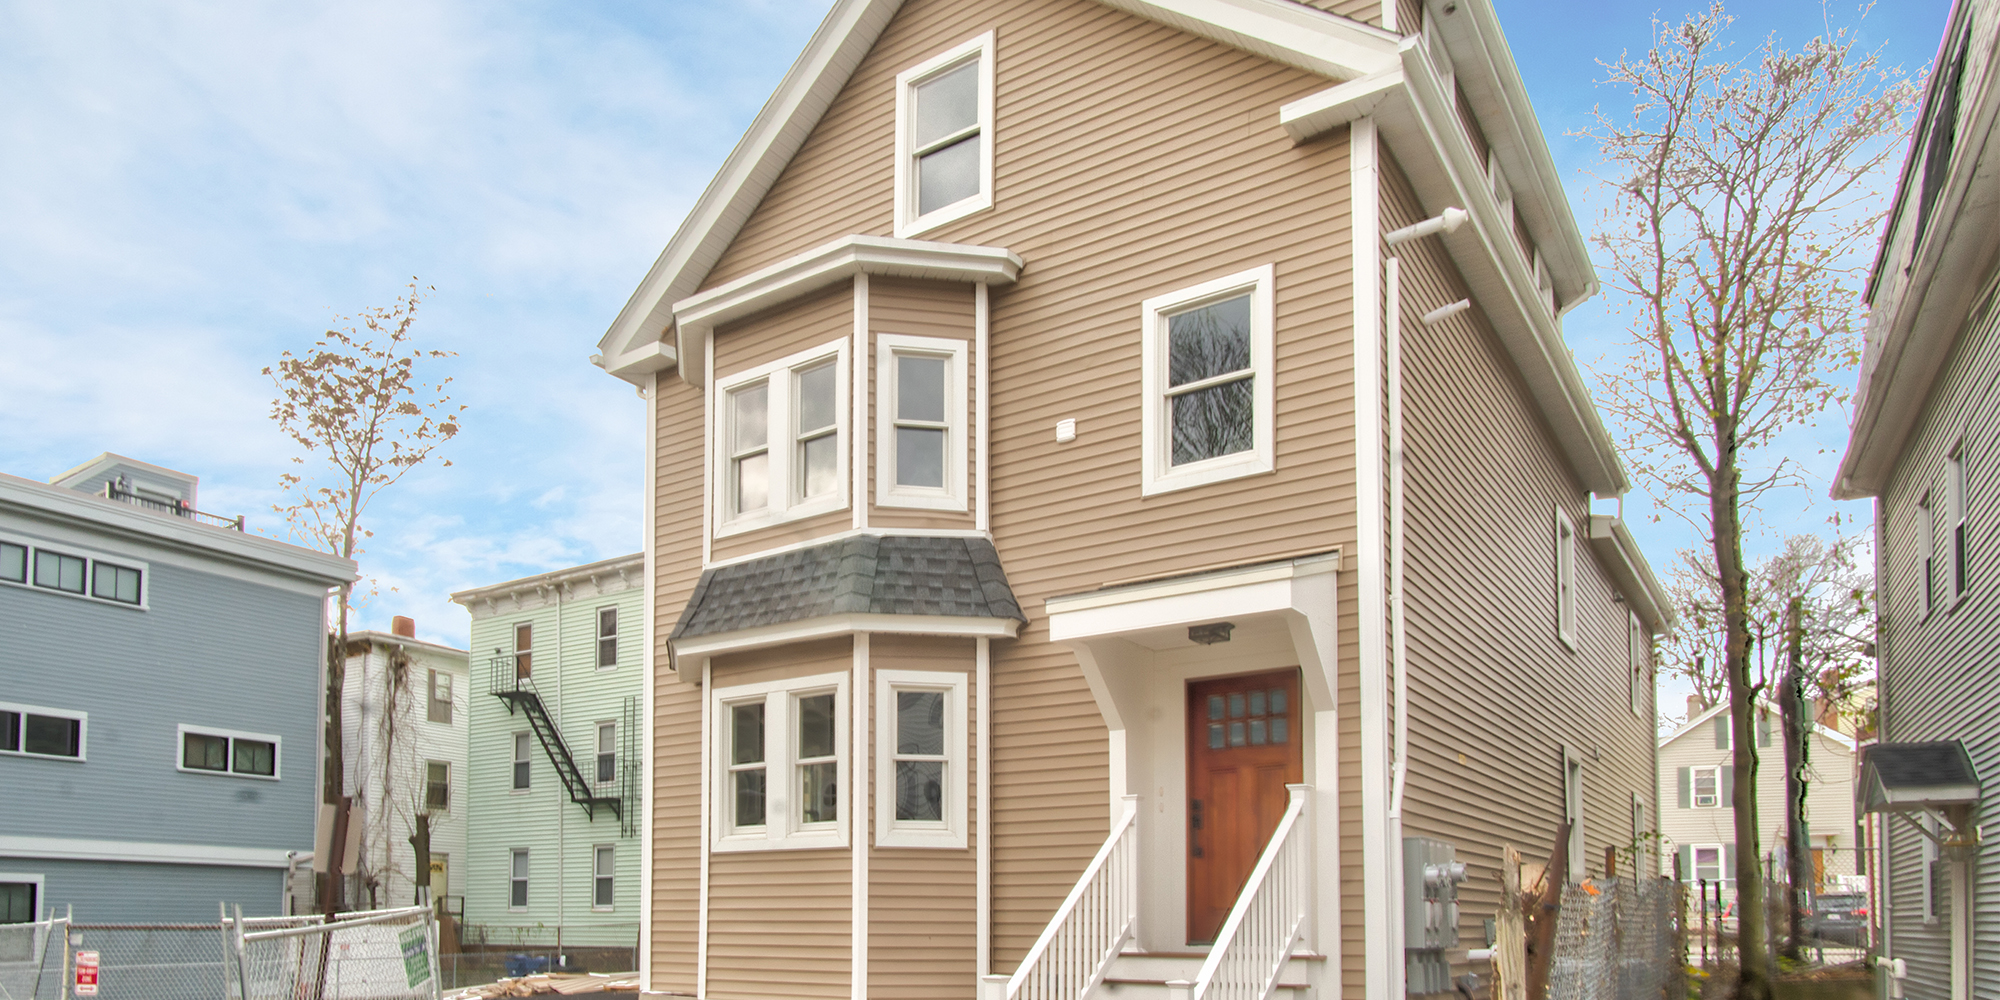 Check Out These Two Newly-Renovated Duplex Condos Now Available in Jamaica Plain's Jackson Square